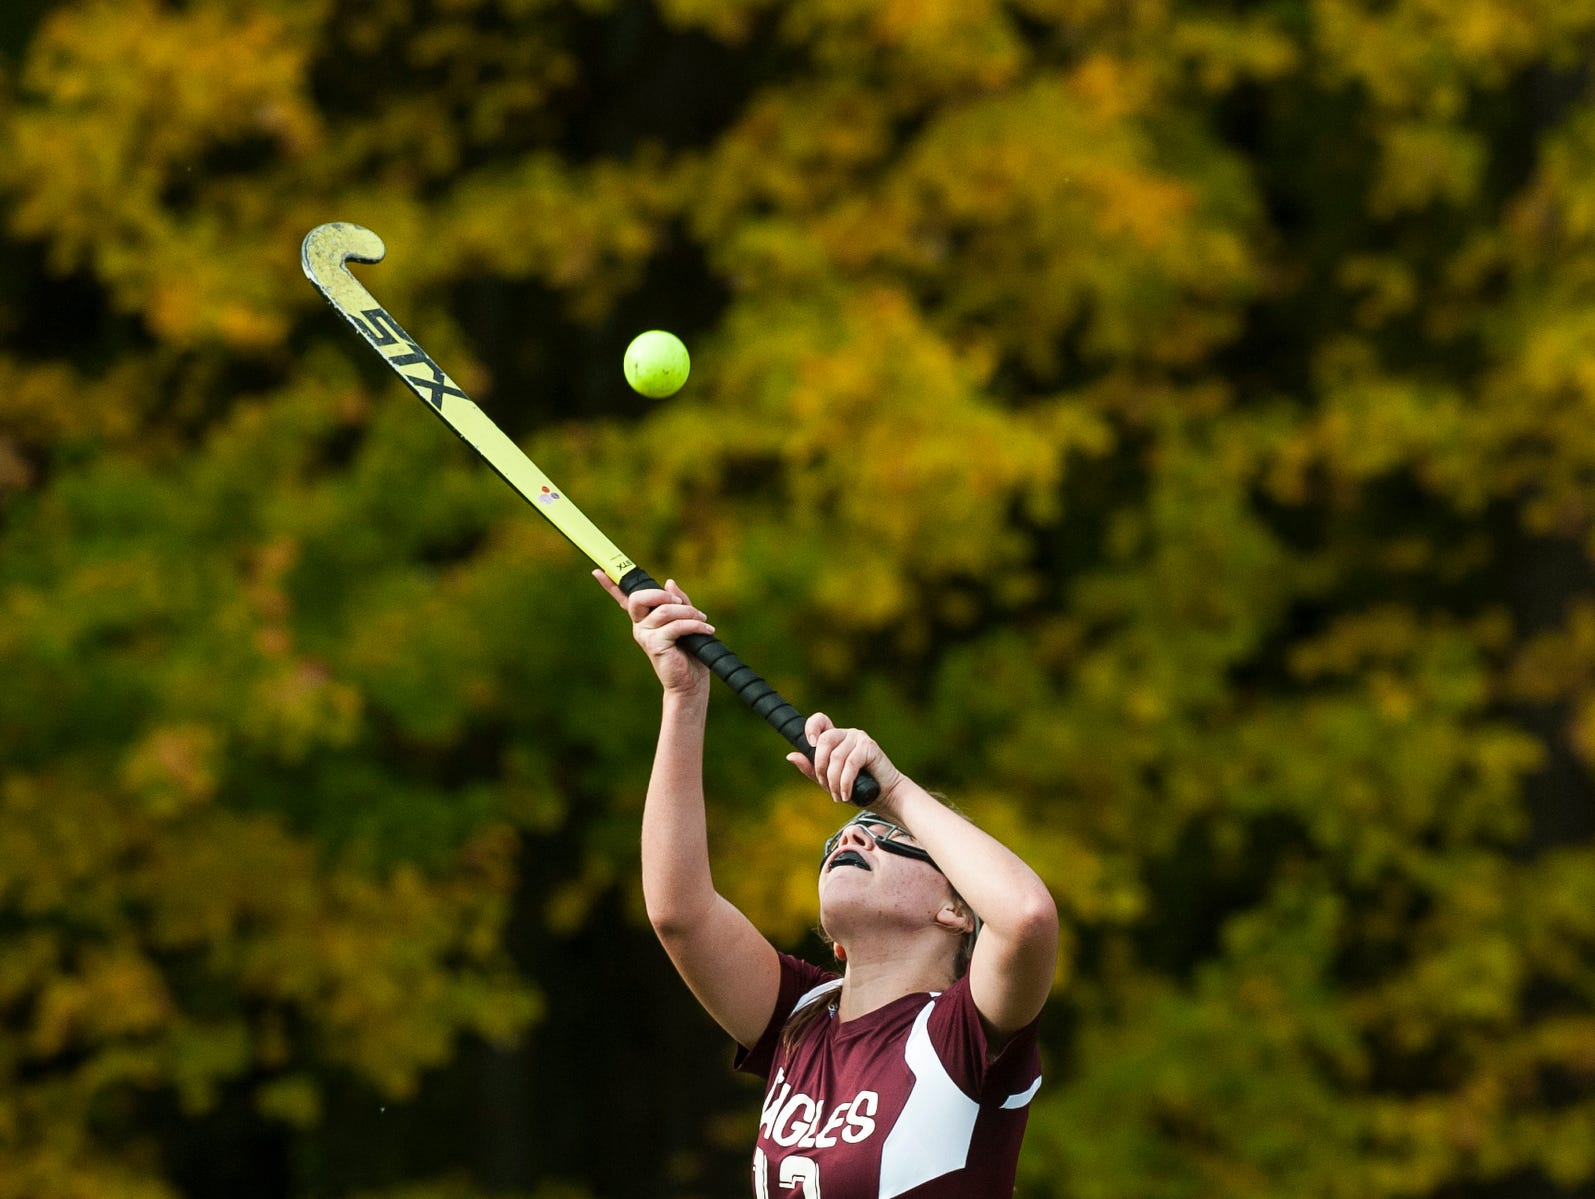 Mt. Abraham's Abby Hoff (13) plays the high ball during the field hockey game between Mount Abraham and Colchester at Colchester High School on Saturday morning October 20, 2018 in Colchester.